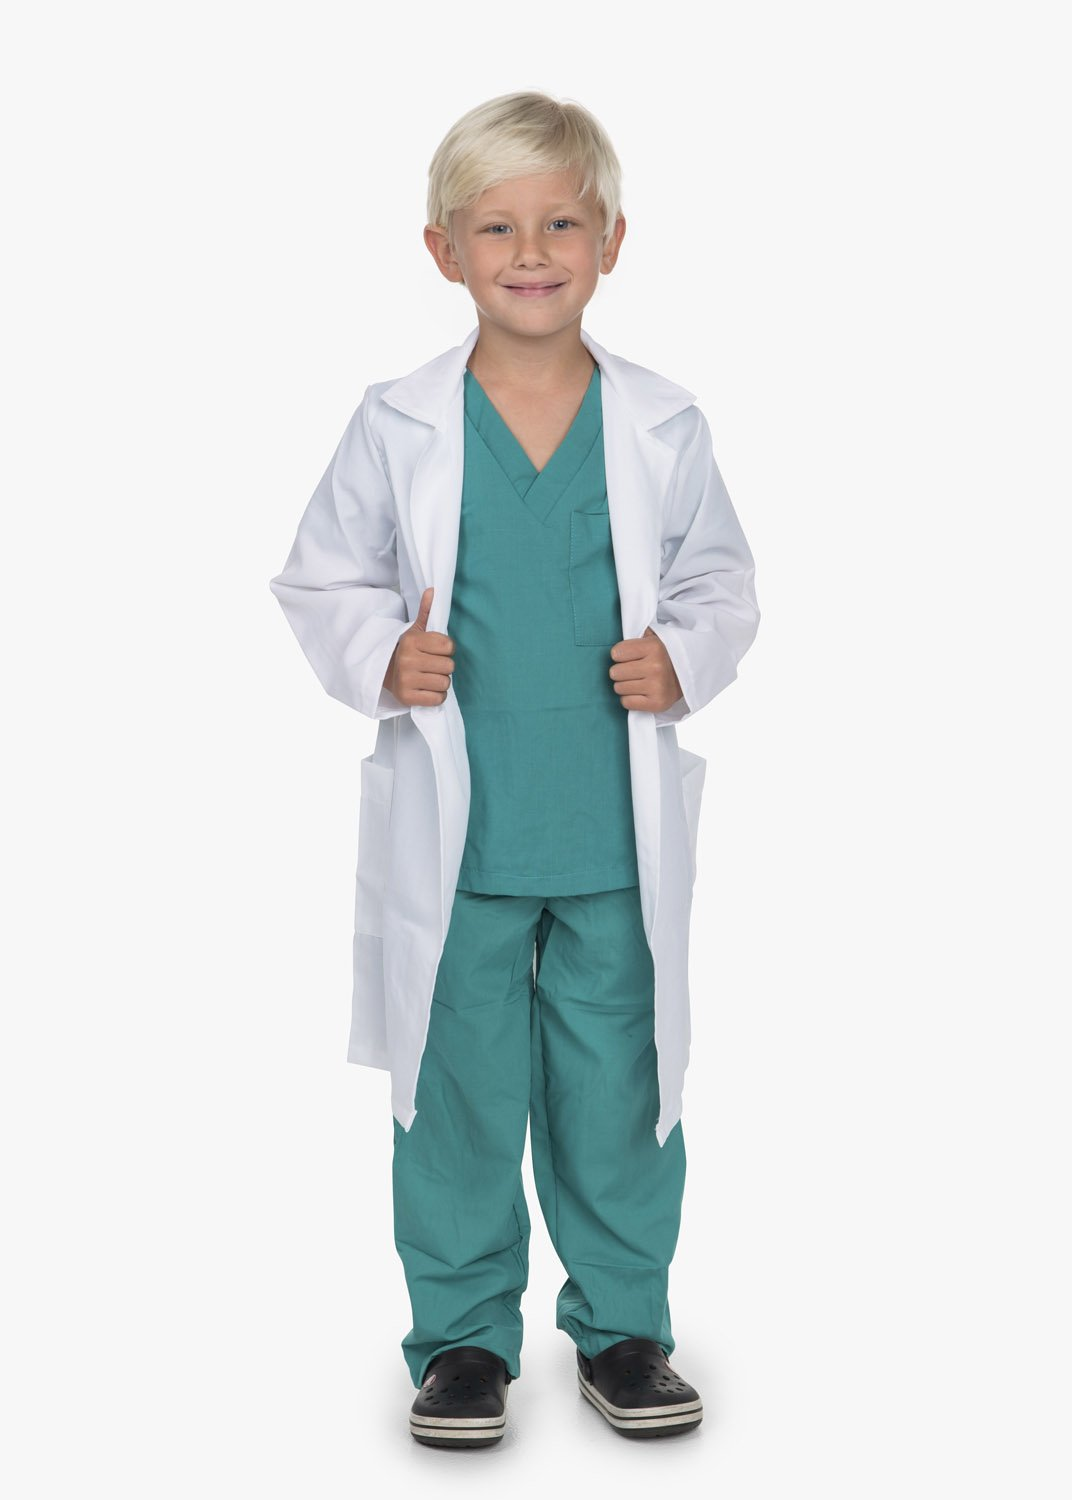 Kidcostumes Doctor Medical Scrubs with White Lab Coat Child Youth (M 6X-8 Child)